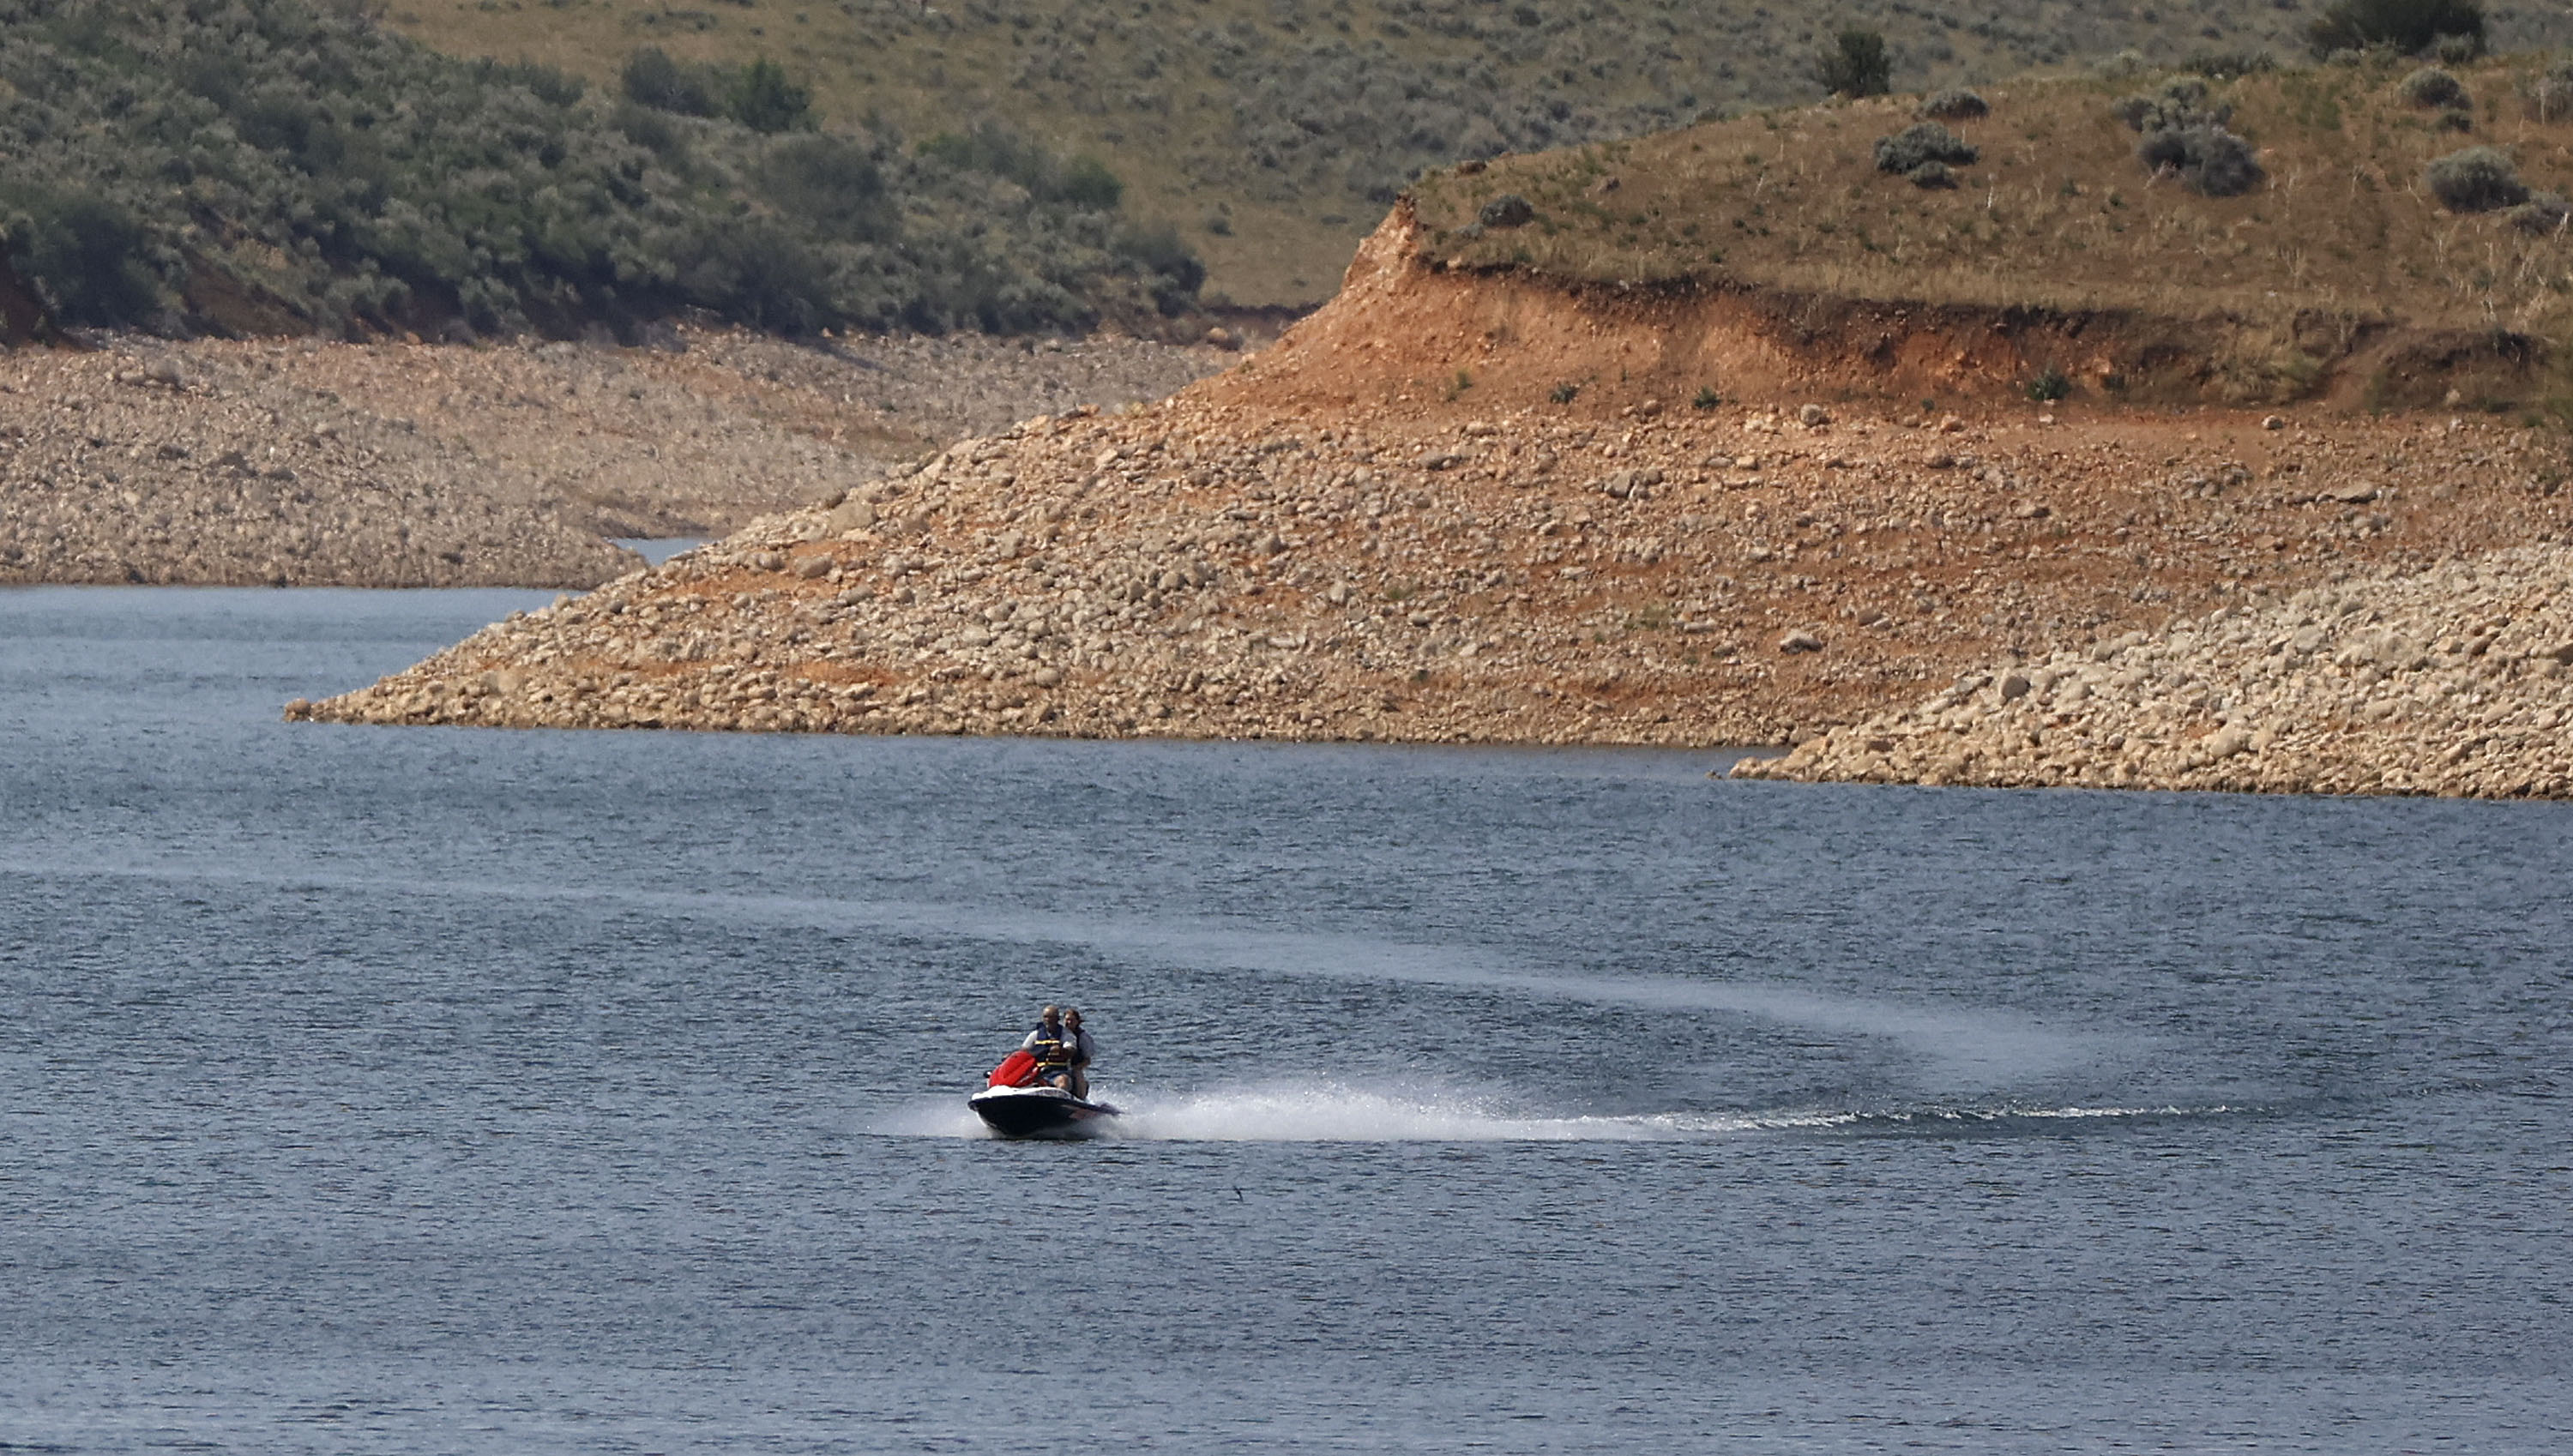 Low water levels are visible as a person rides a personal watercraft on East Canyon Reservoir in Morgan County during a drought in Utah on Wednesday, June 16, 2021.